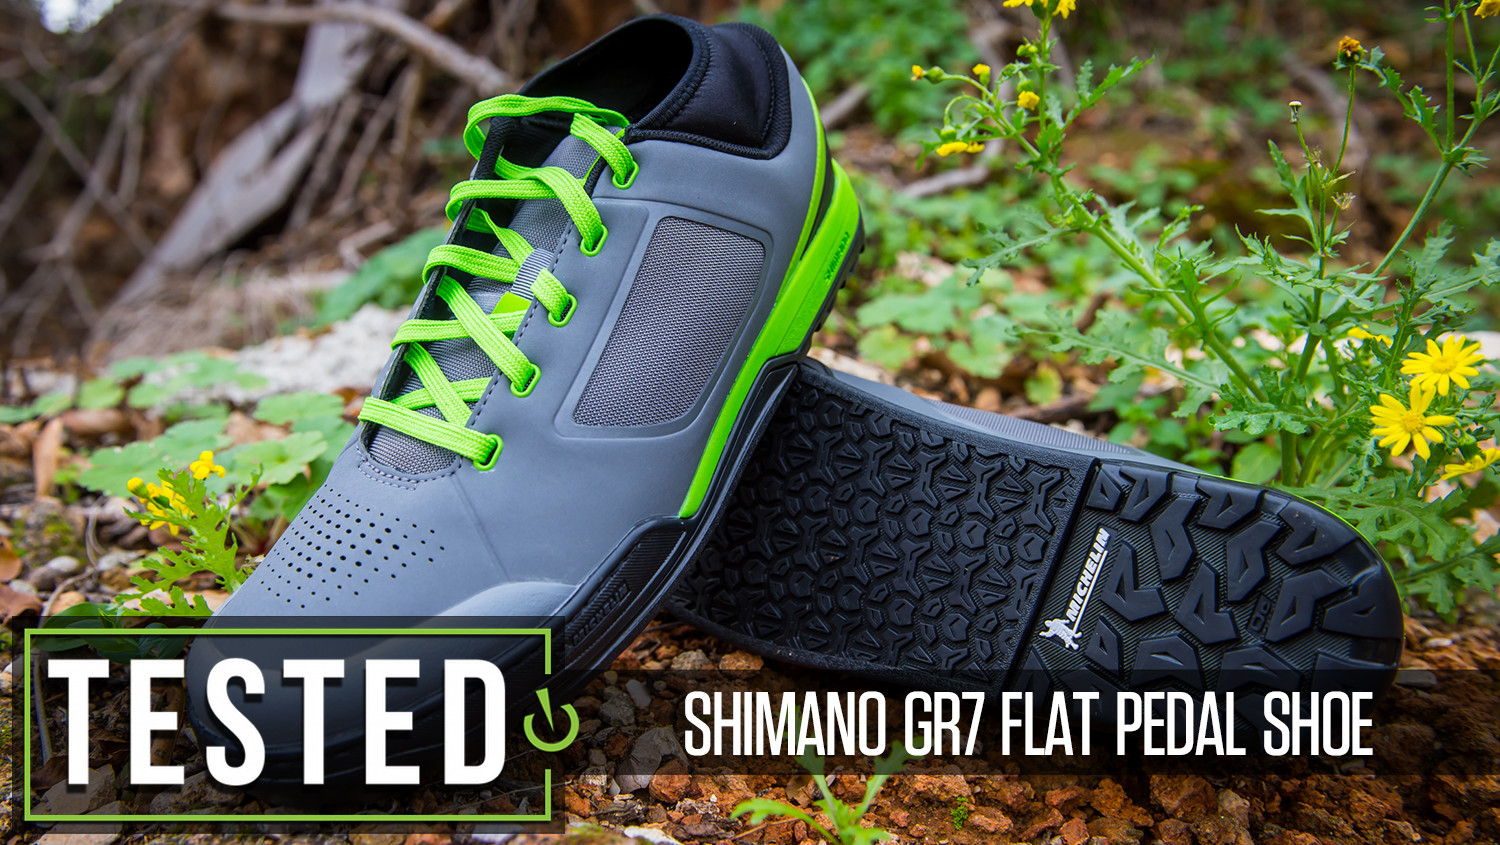 Tested: Shimano GR7 Flat Pedal Shoe